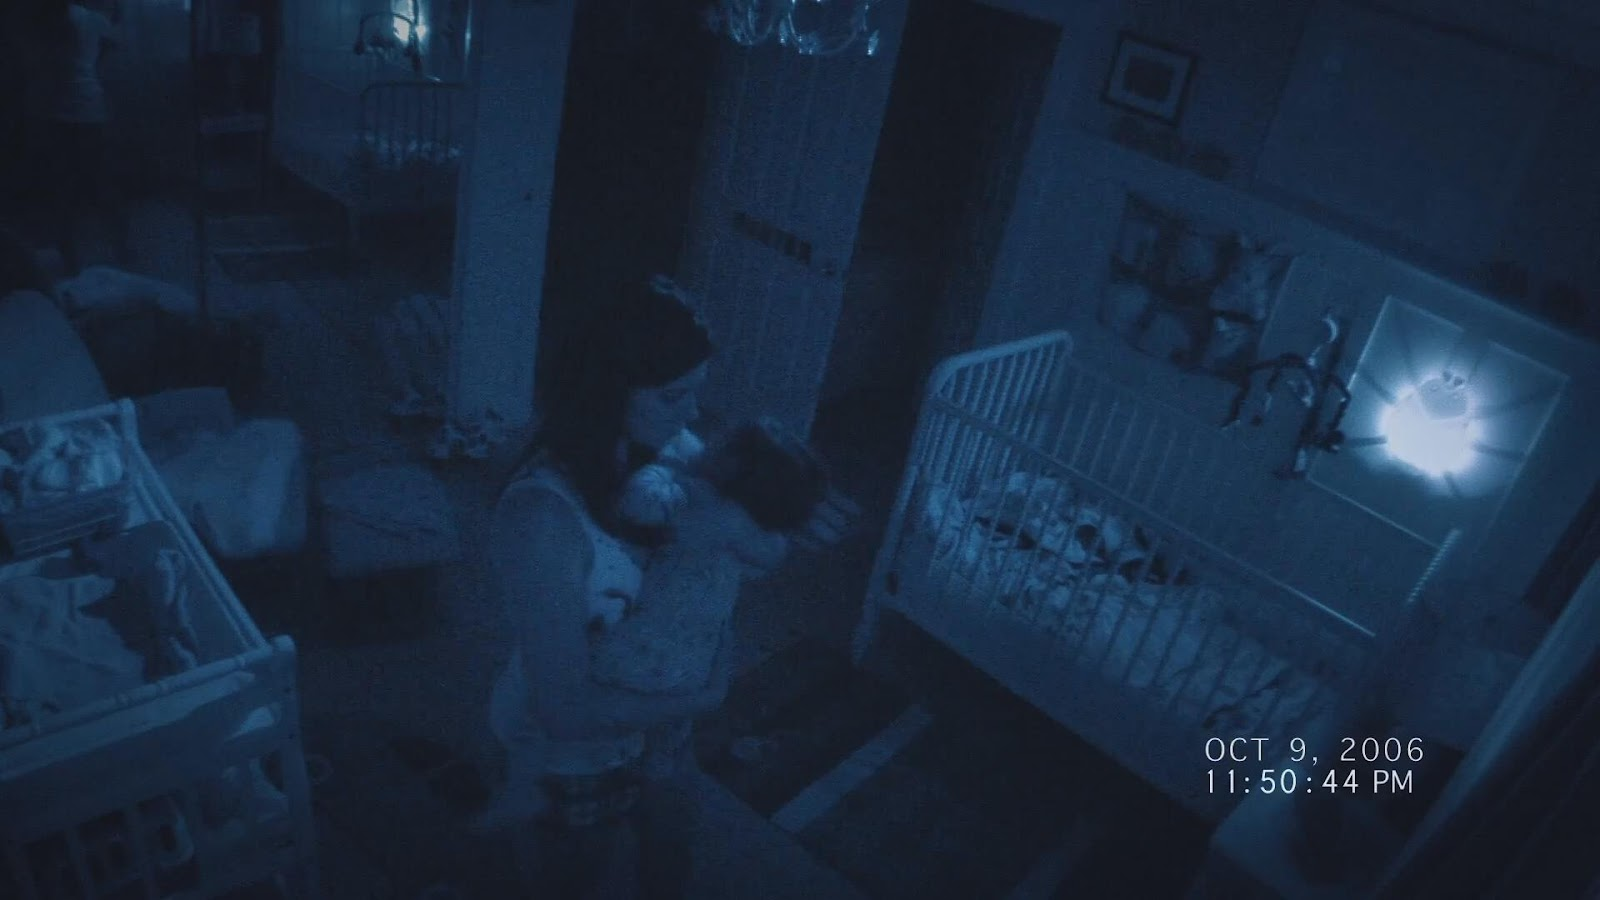 Paranormal+Activity+4+hd+wallpapers+%285%29 Paranormal Activity 4 Fragmanı İzle